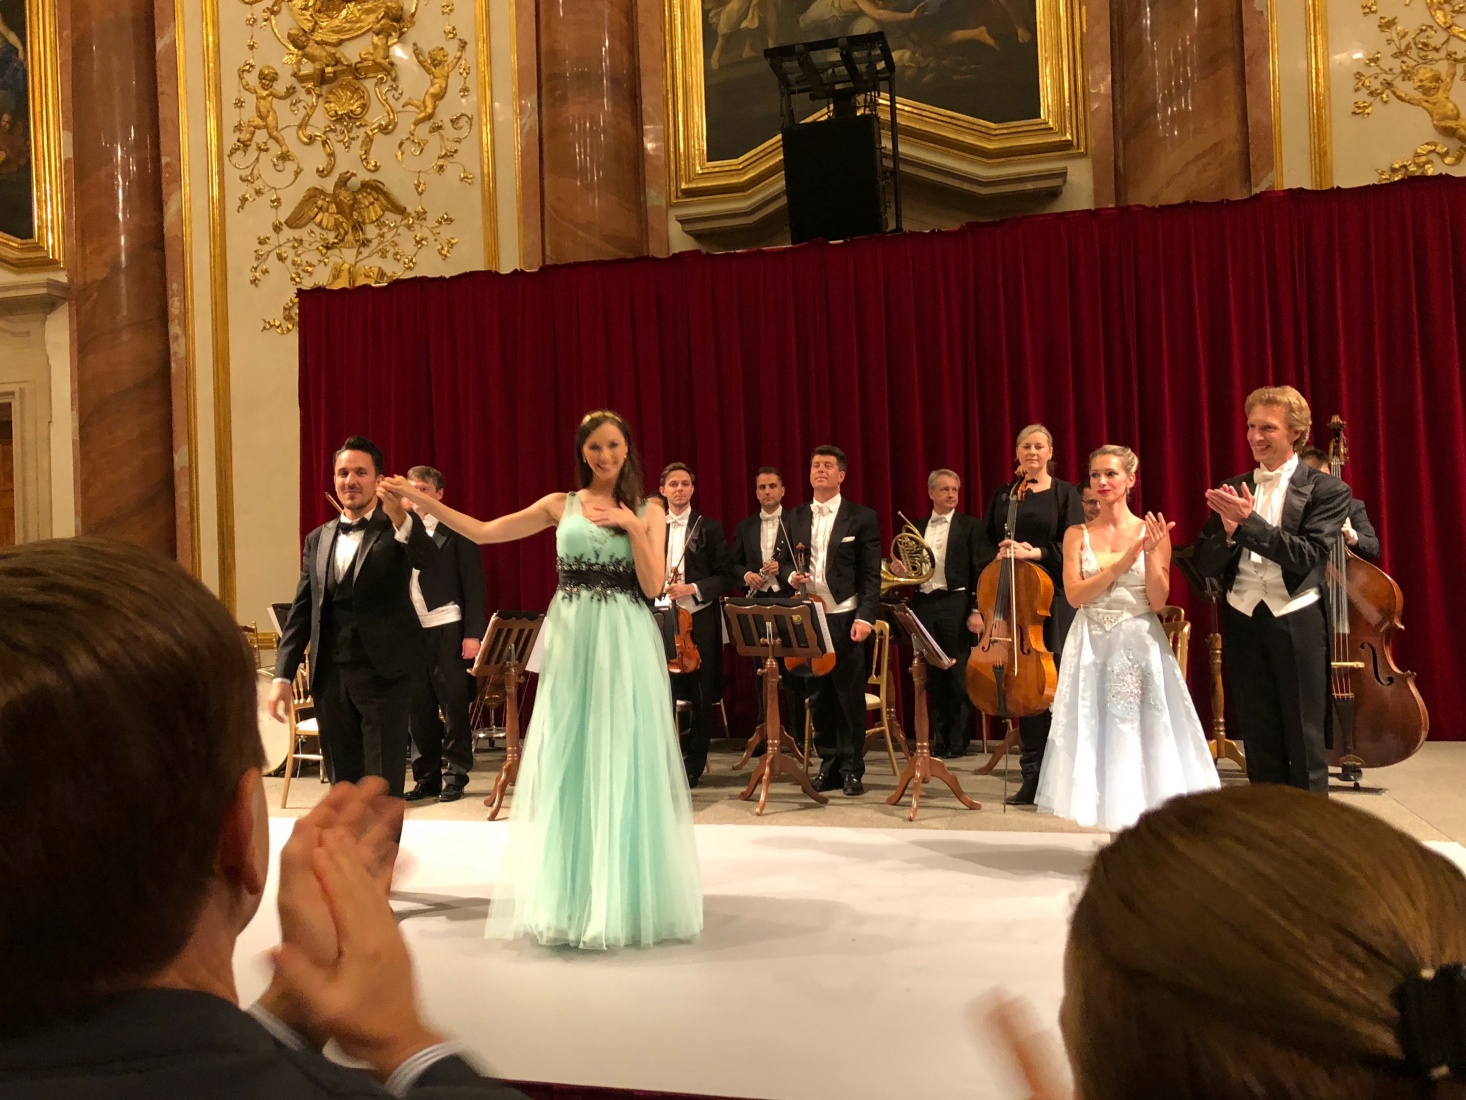 An evening concert in the Liechtenstein Palace, in Vienna, Austria.